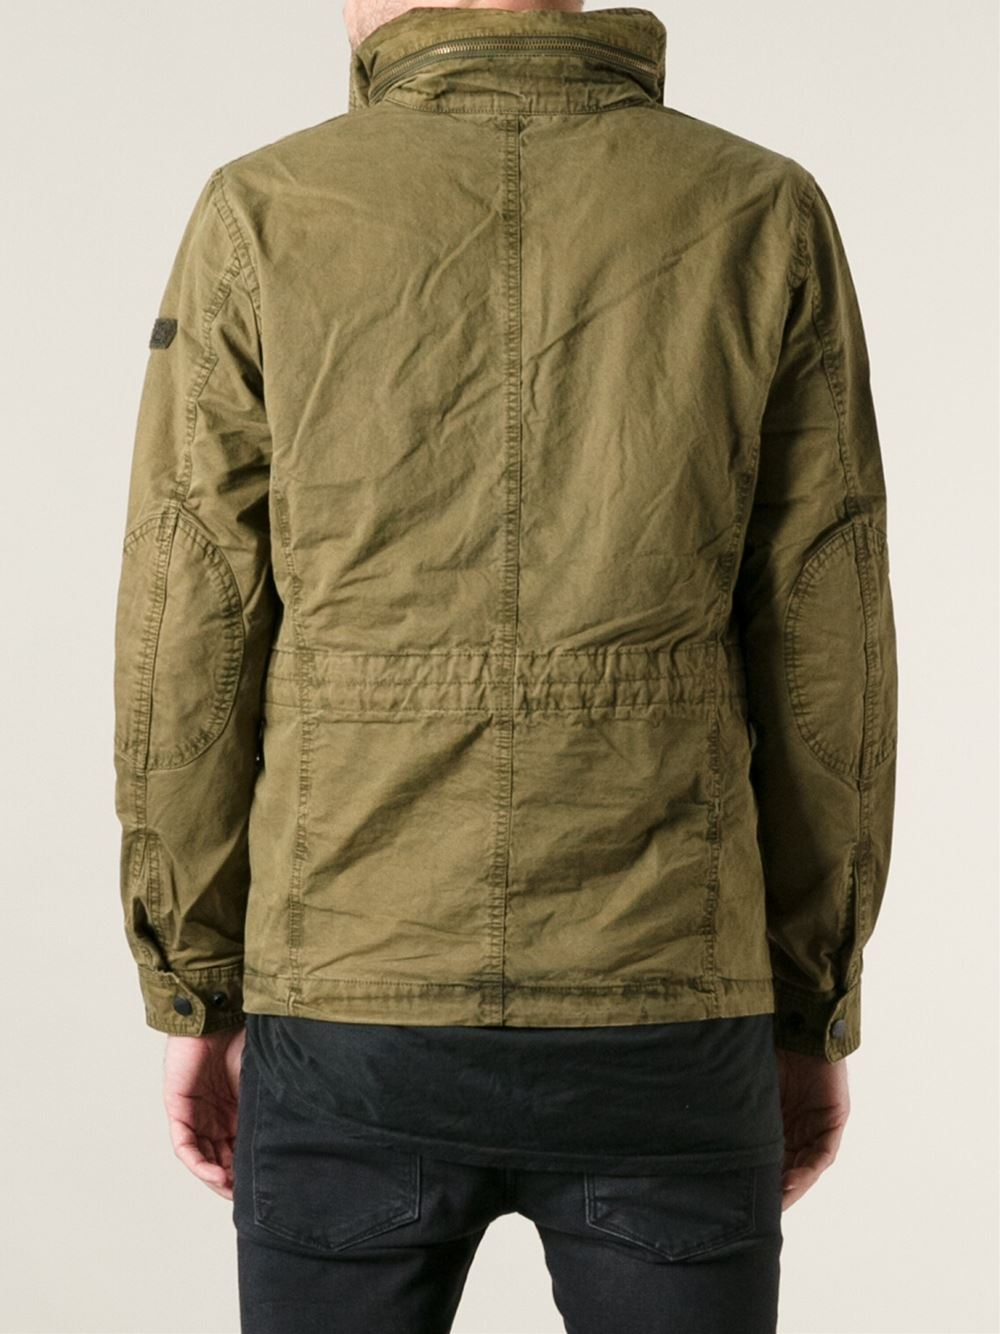 The military field jacket hasn't changed very much over the past 50 years since the M was introduced, save for a few extra style cues including colors, materials, and subtle changes that don't skew far from the original design.